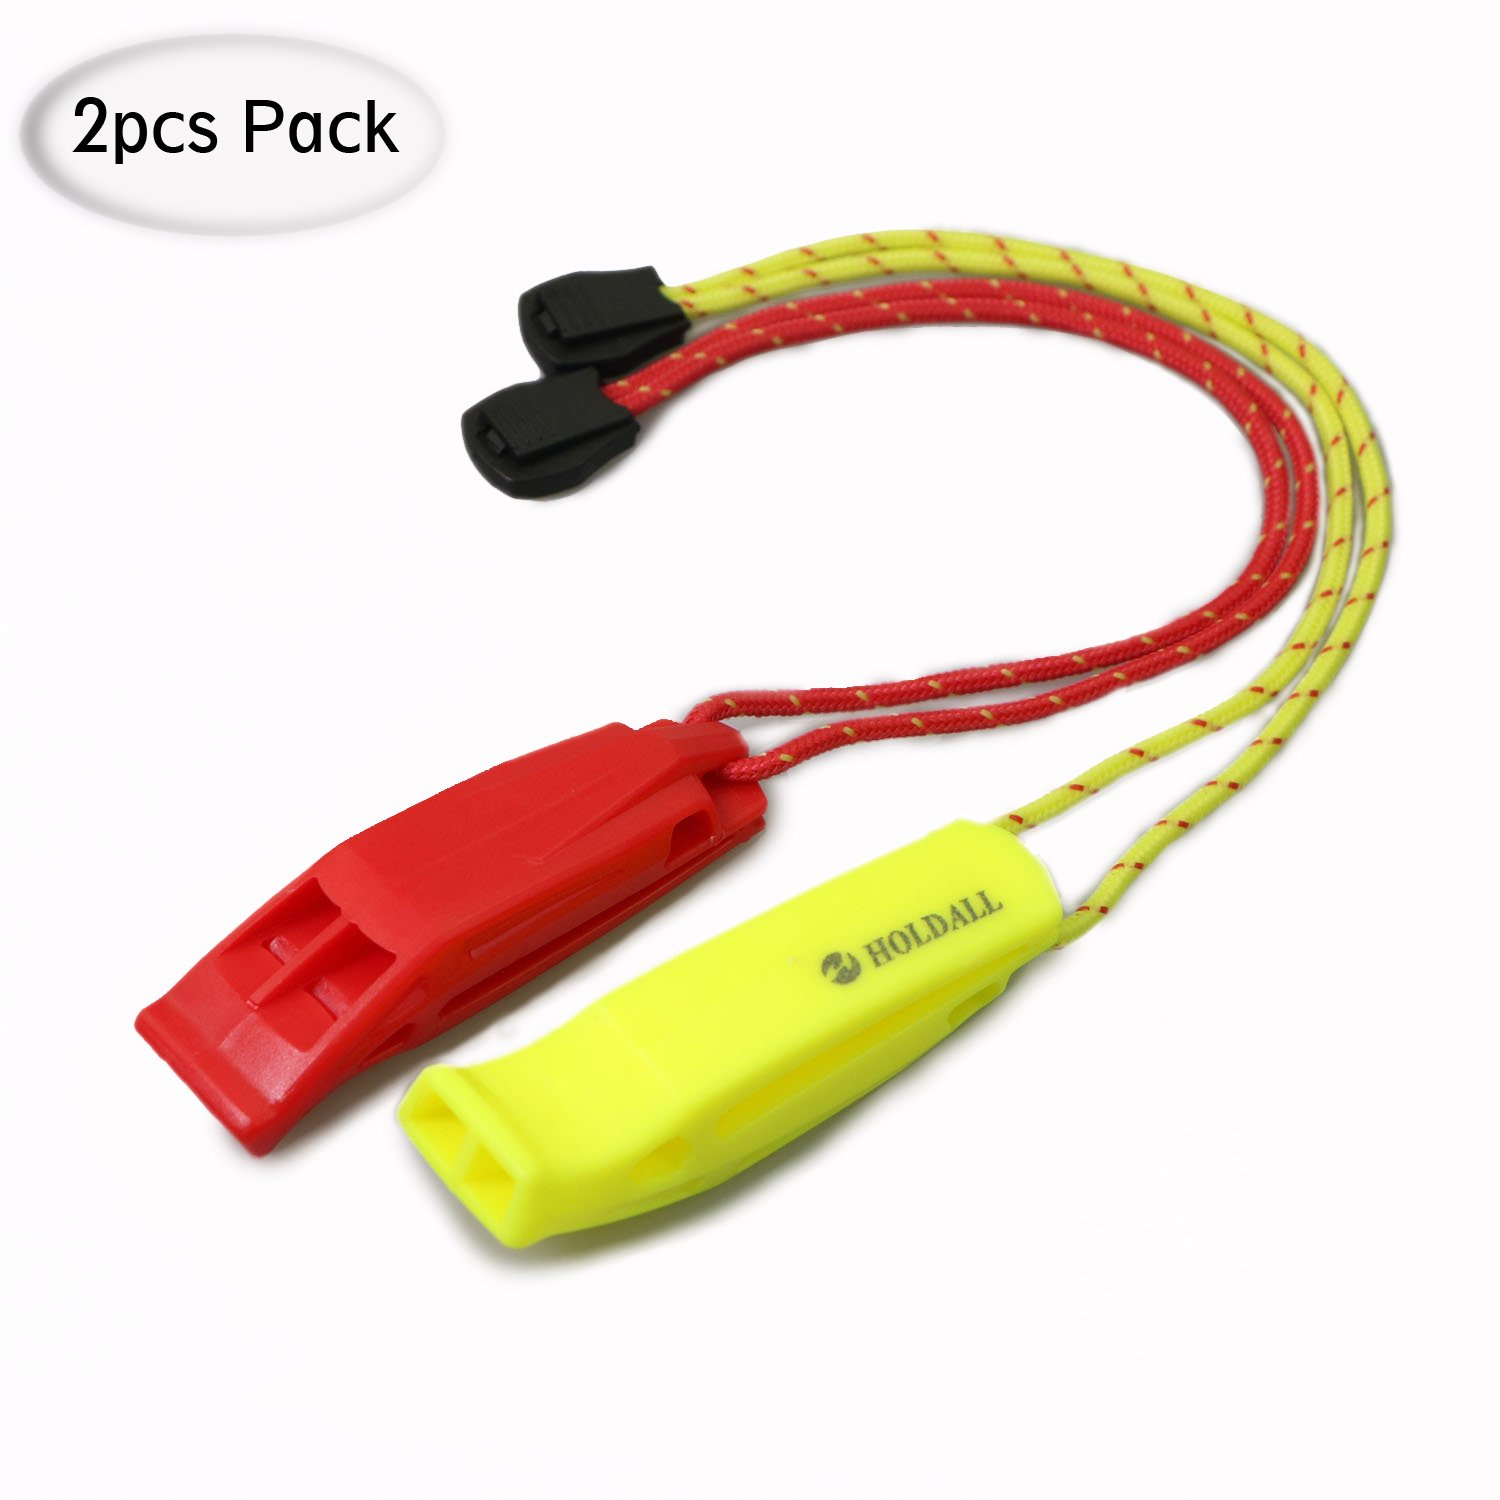 HOLDALL Emergency Safety Whistle with Lanyard for Boating Hiking Kayak Life Vest Survival Rescue Signaling.